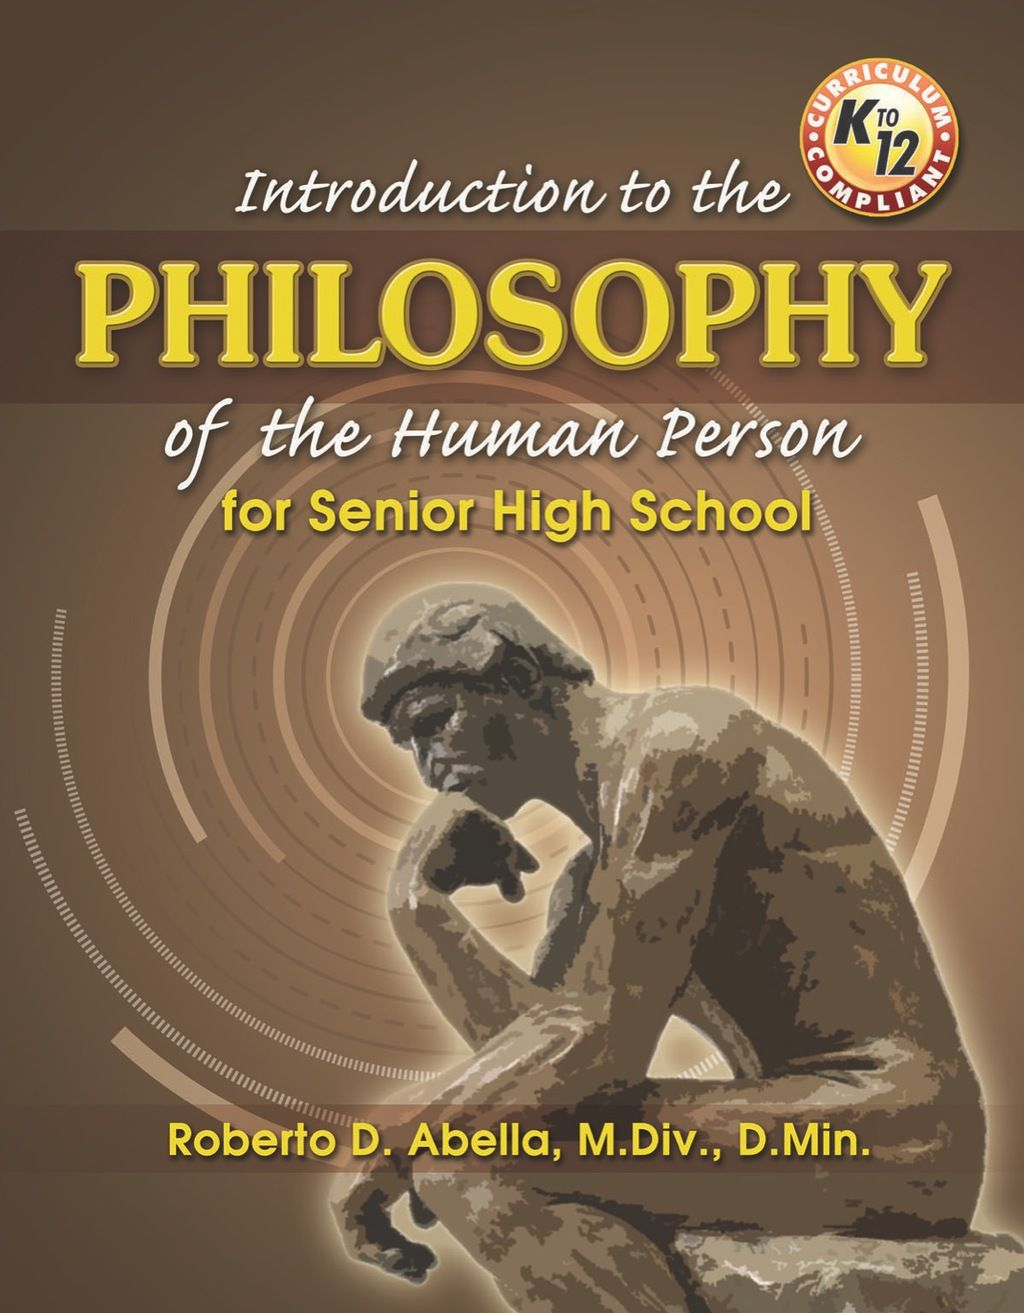 Introduction To The Philosophy Of The Human Person For Senior High School Ebook High School Seniors Philosophy Introduction